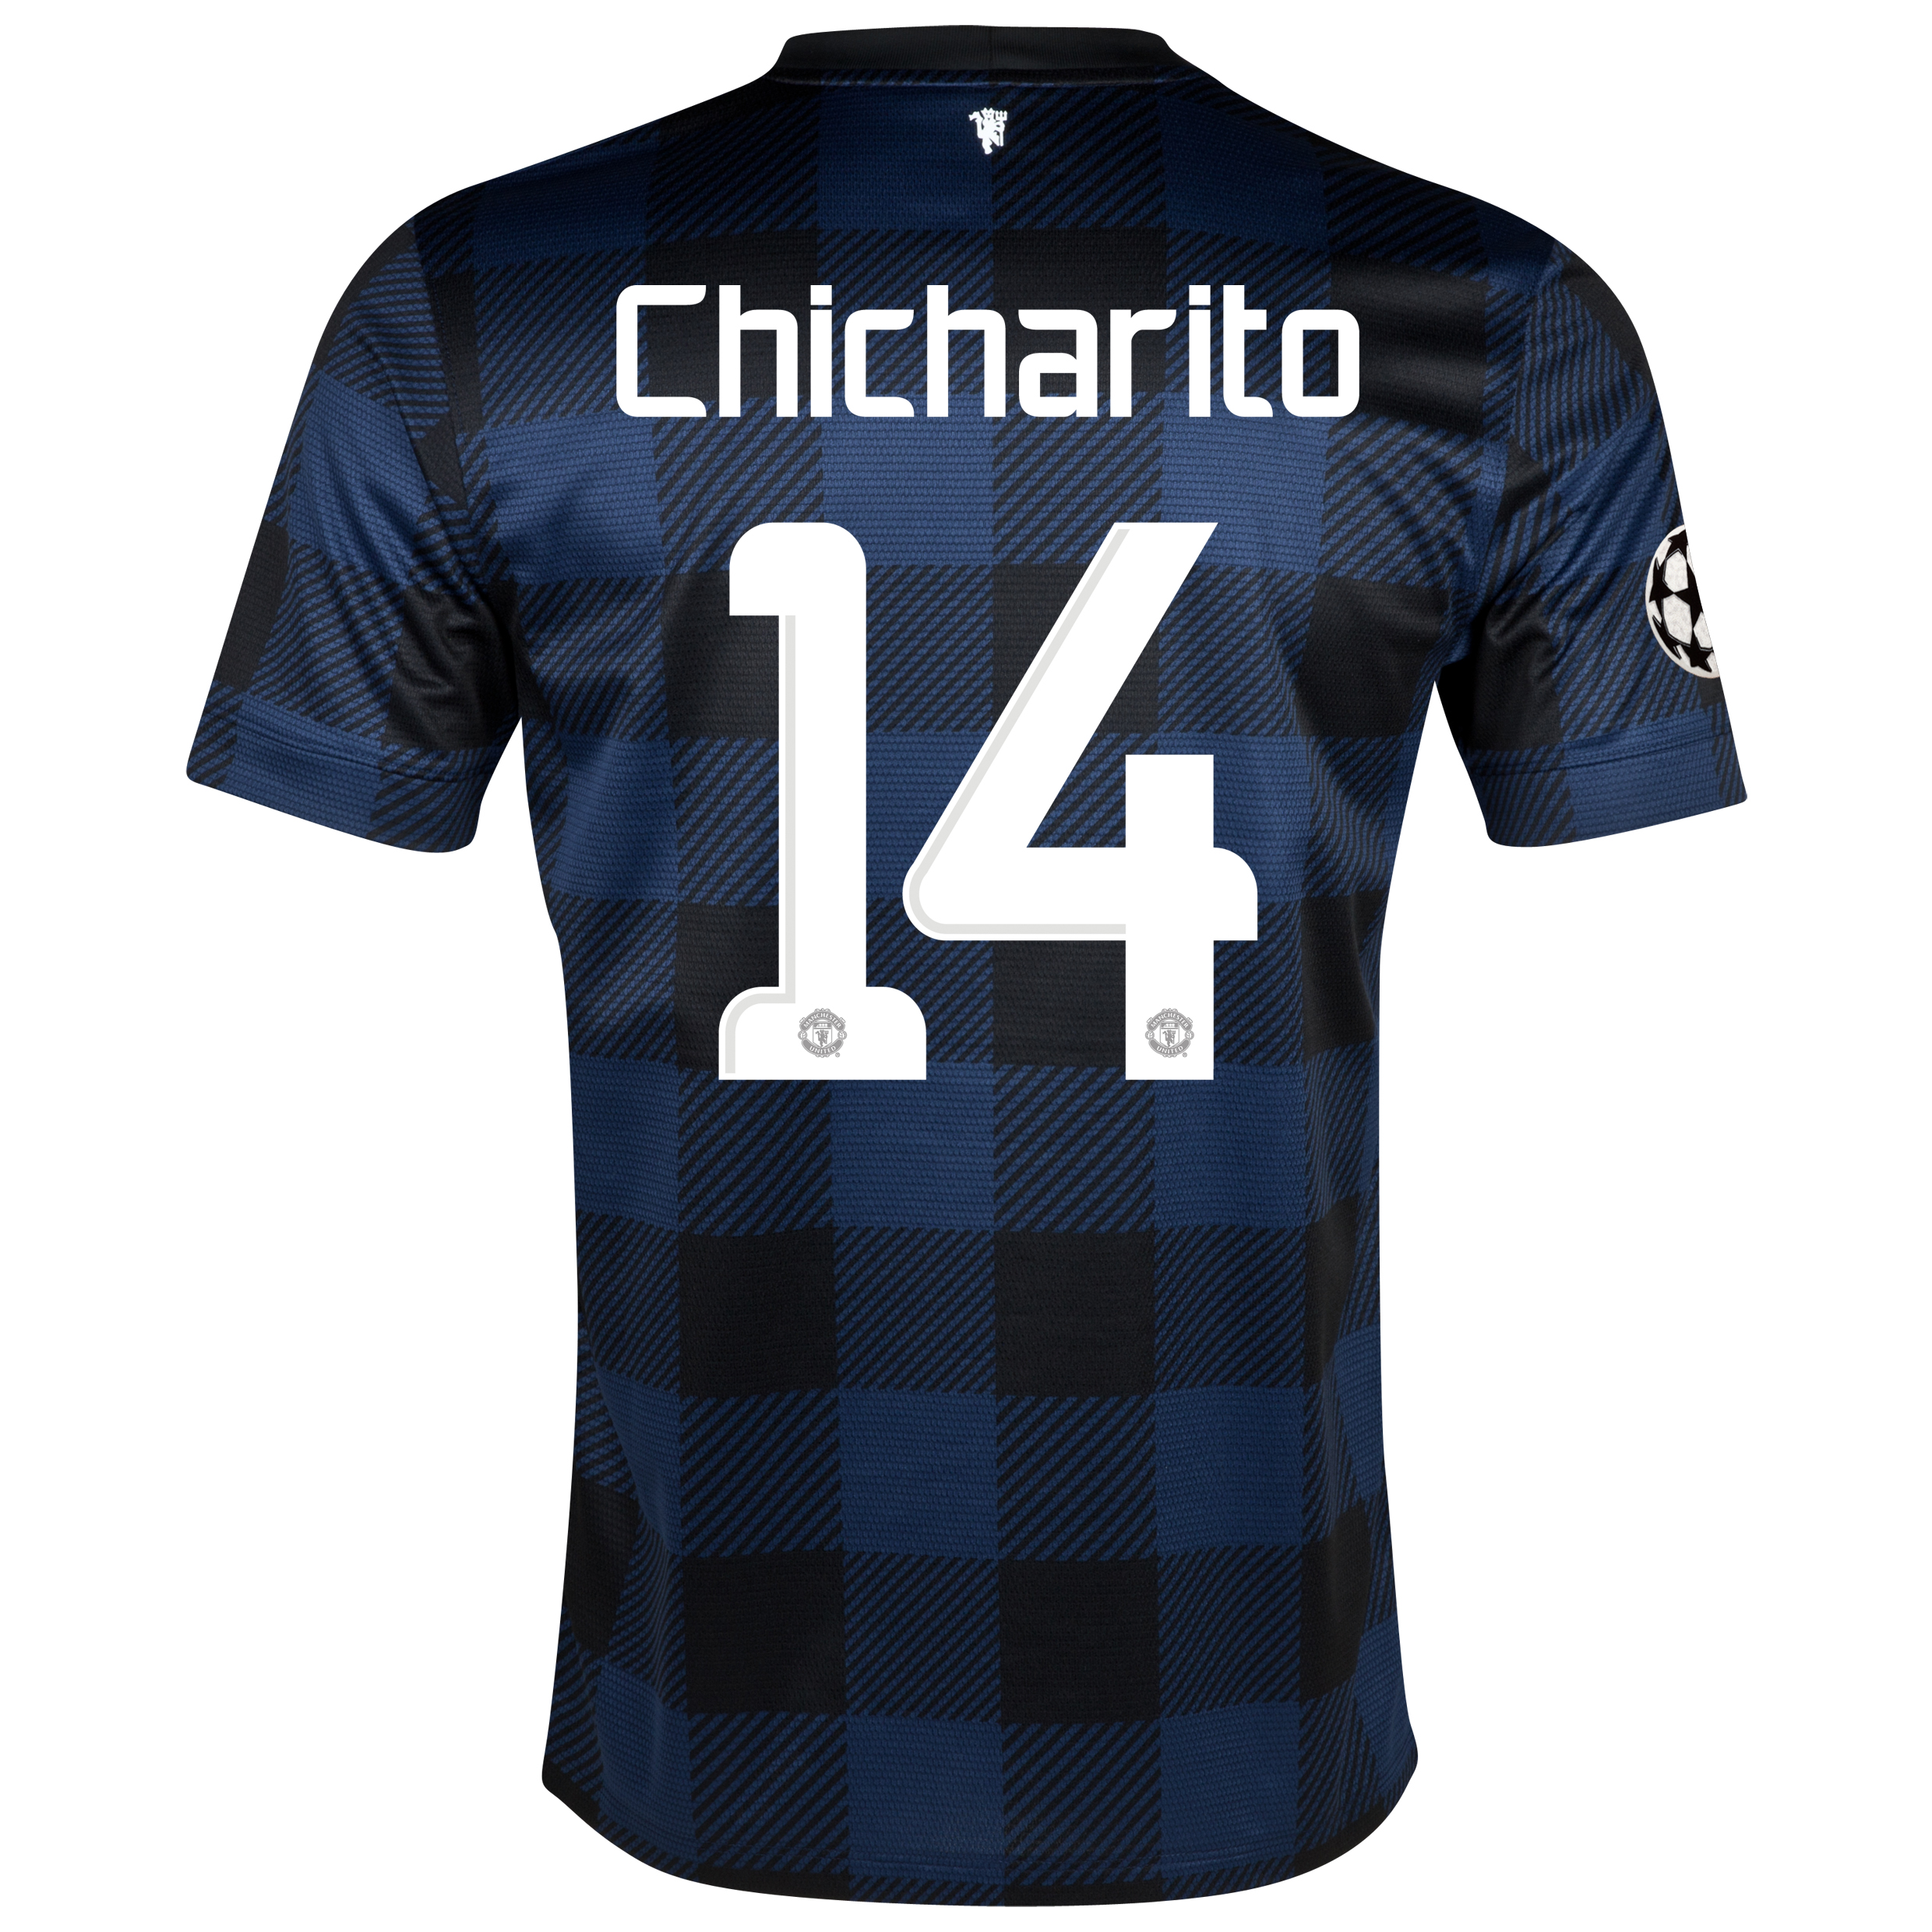 Manchester United UEFA Champions League Away Shirt 2013/14 with Chicharito 14 printing